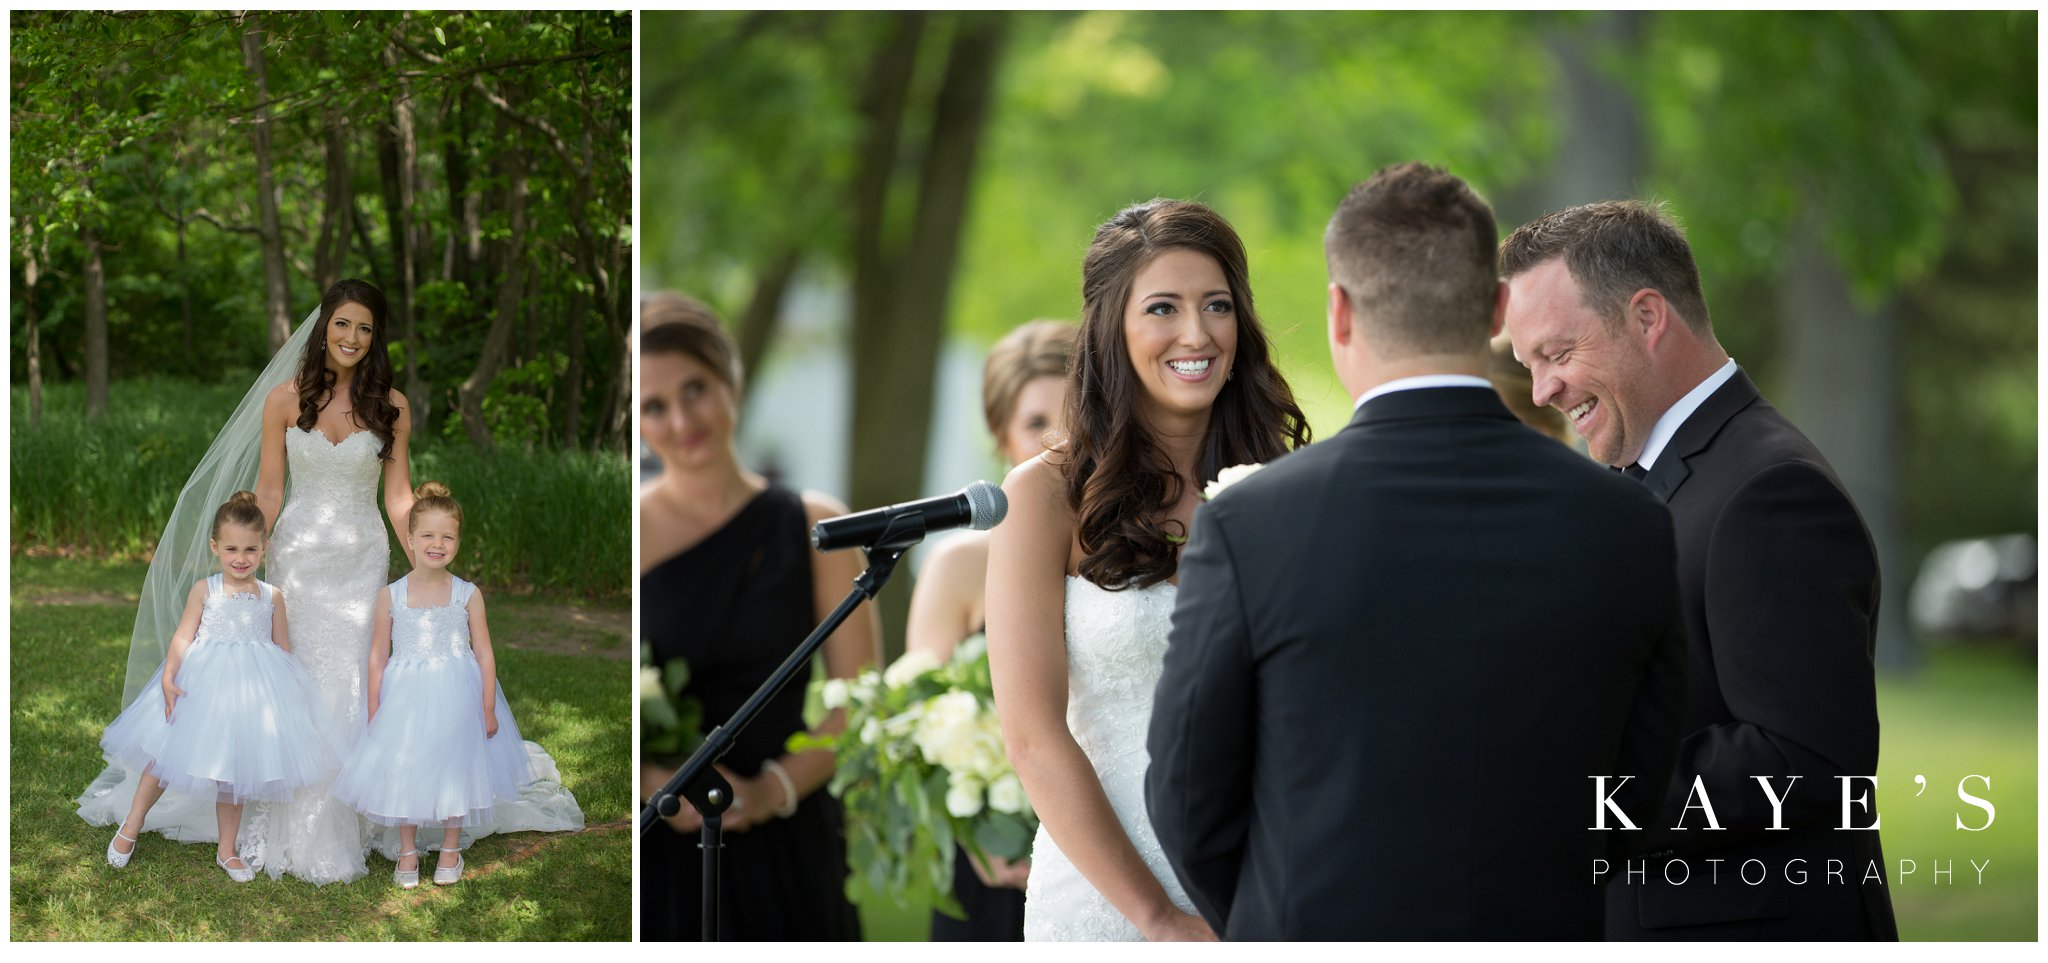 Kayes Photography- howell-michigan-wedding-photographer_0694.jpg